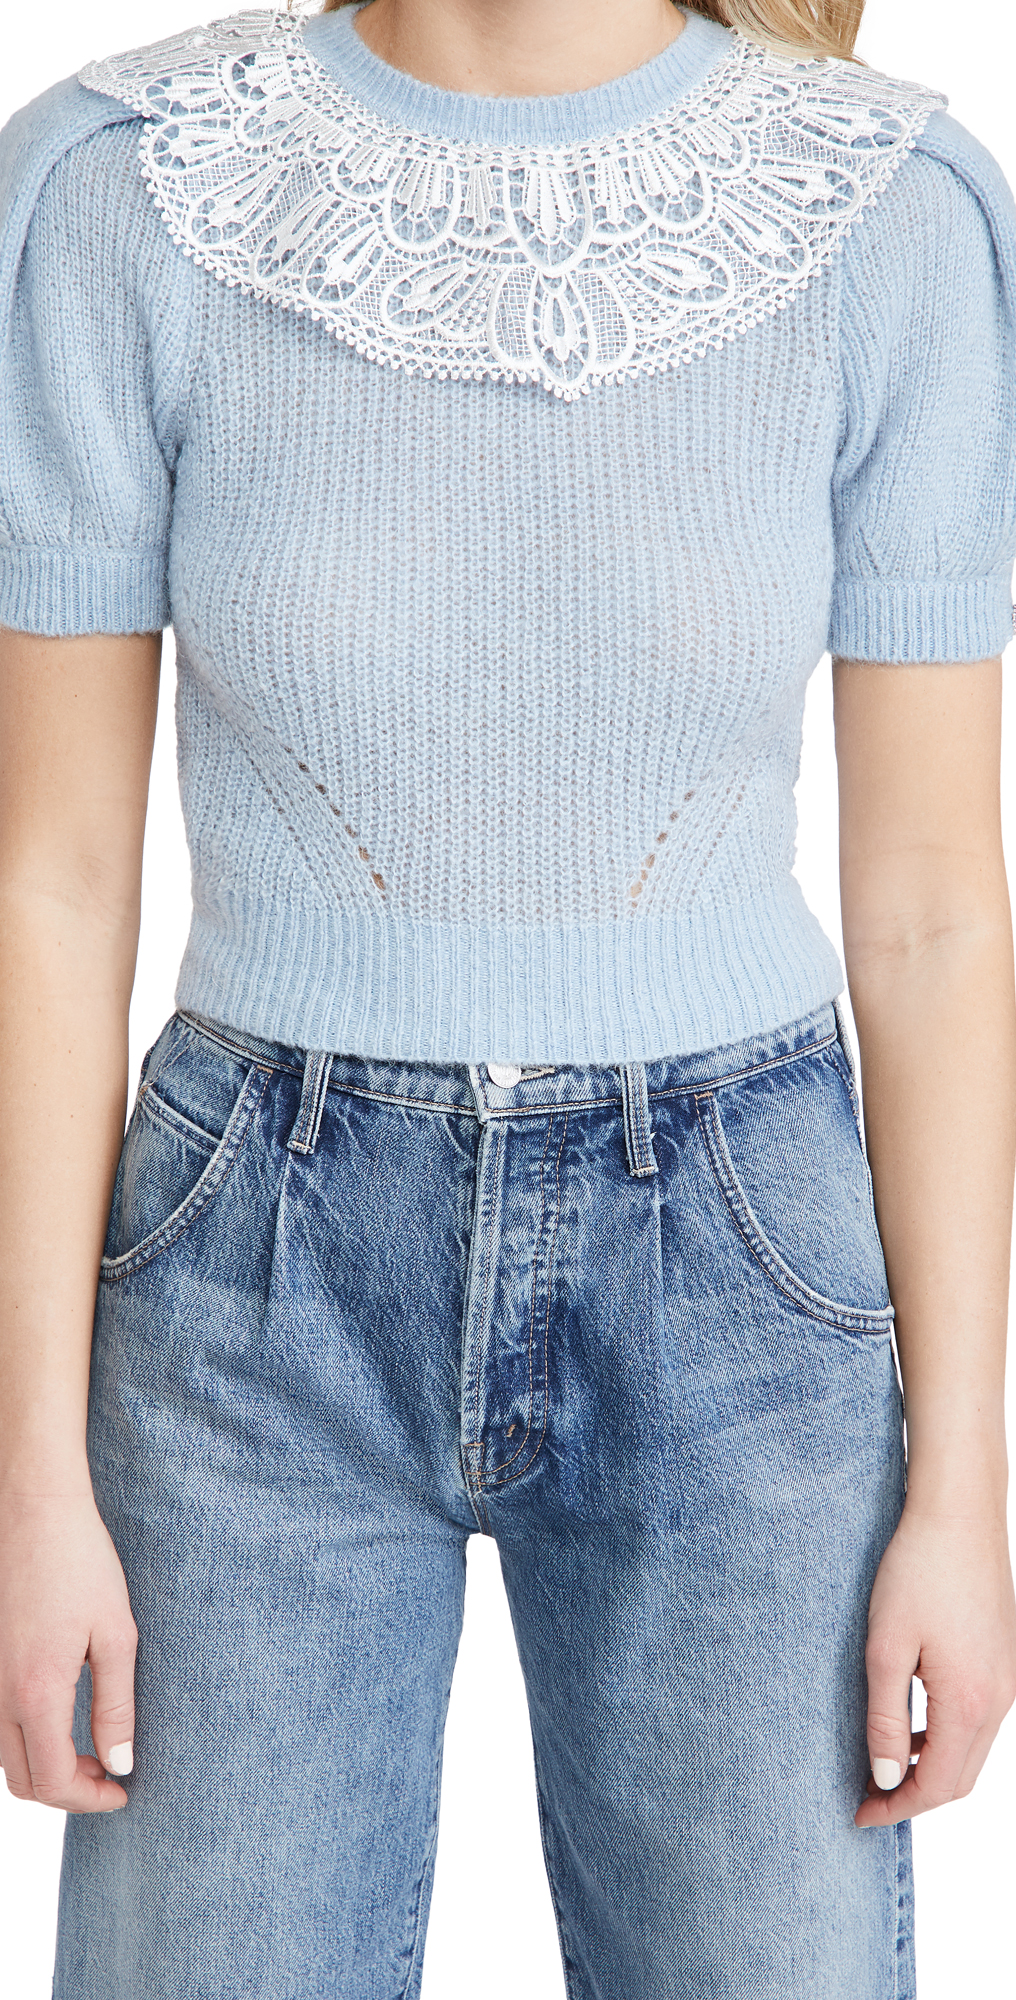 Self Portrait Lace Collar Cable Sweater